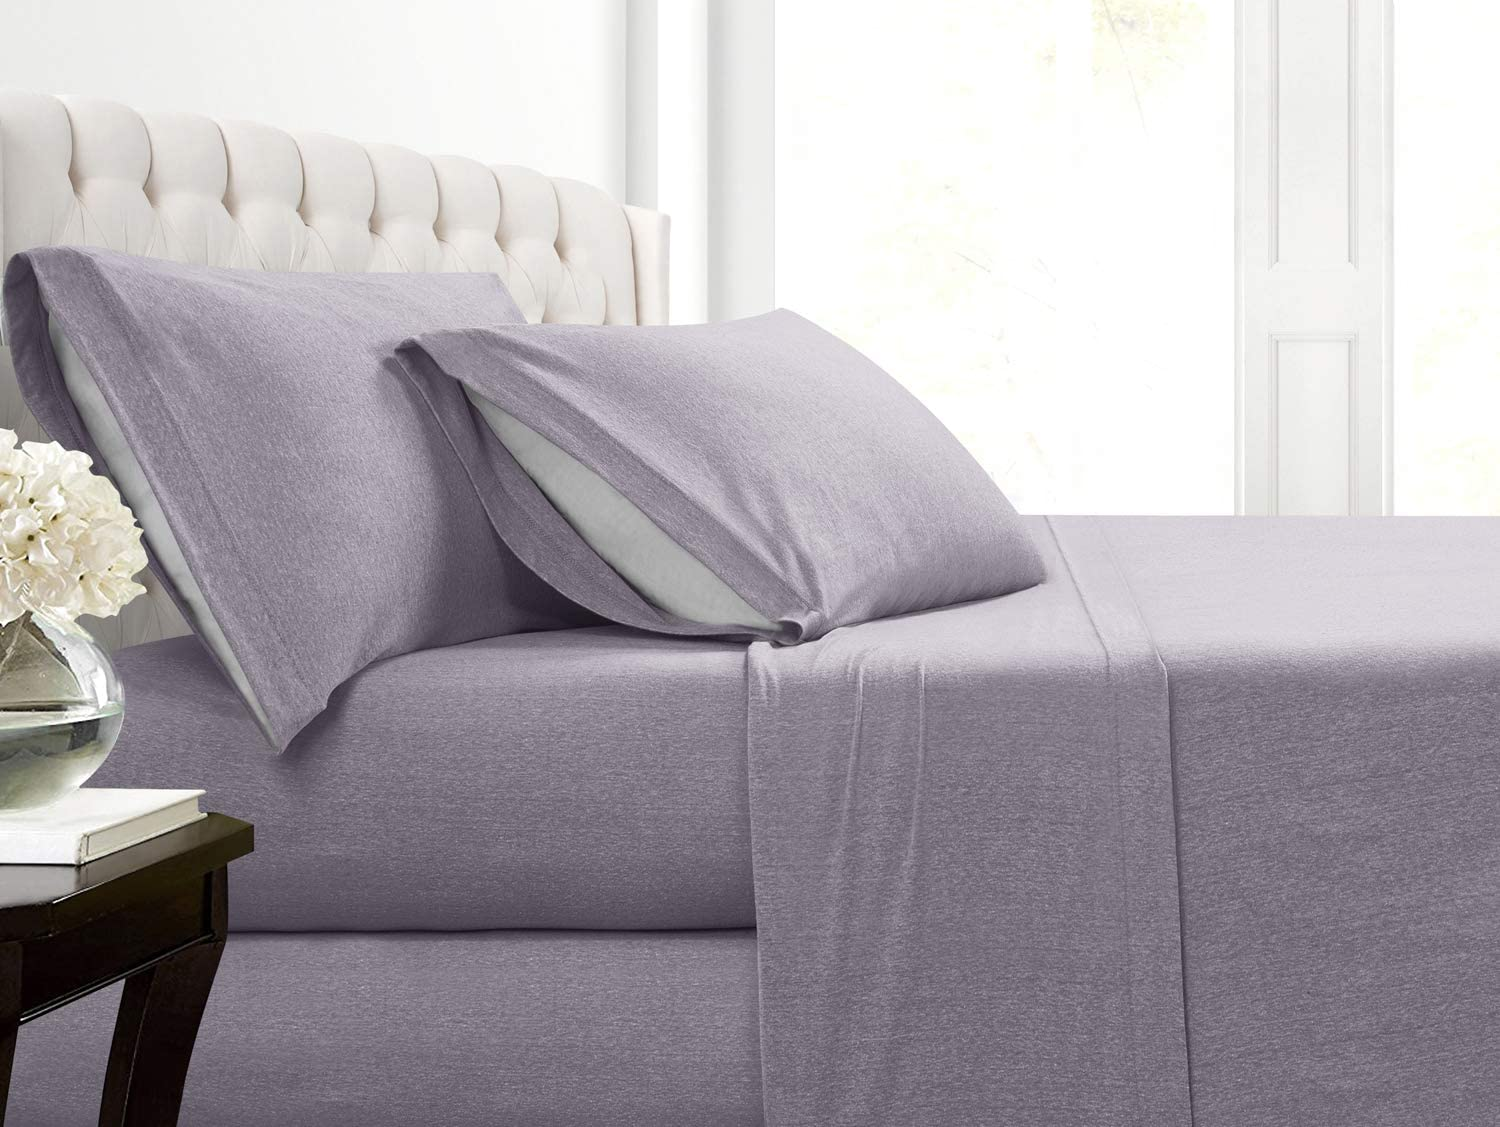 Cotton Rich T-Shirt Soft Heather Jersey Knit Sheet Set - All Season Bed Sheets,, Warm and Cozy, Comfort by Morgan Home Fashions (Full, Heather Purple)